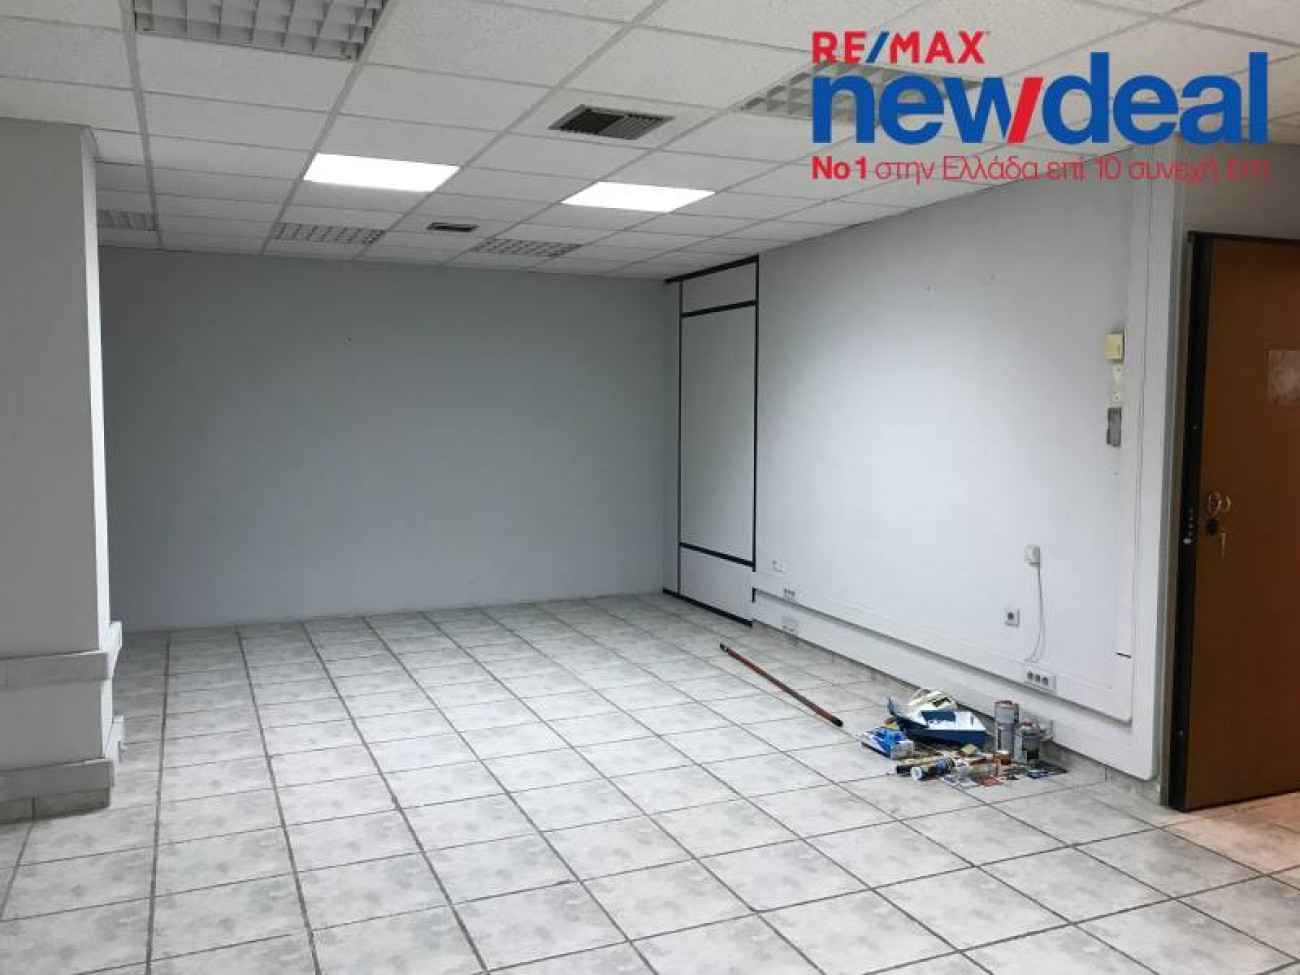 Office for Rent in Central & Western Suburbs, Prefecture of Attica